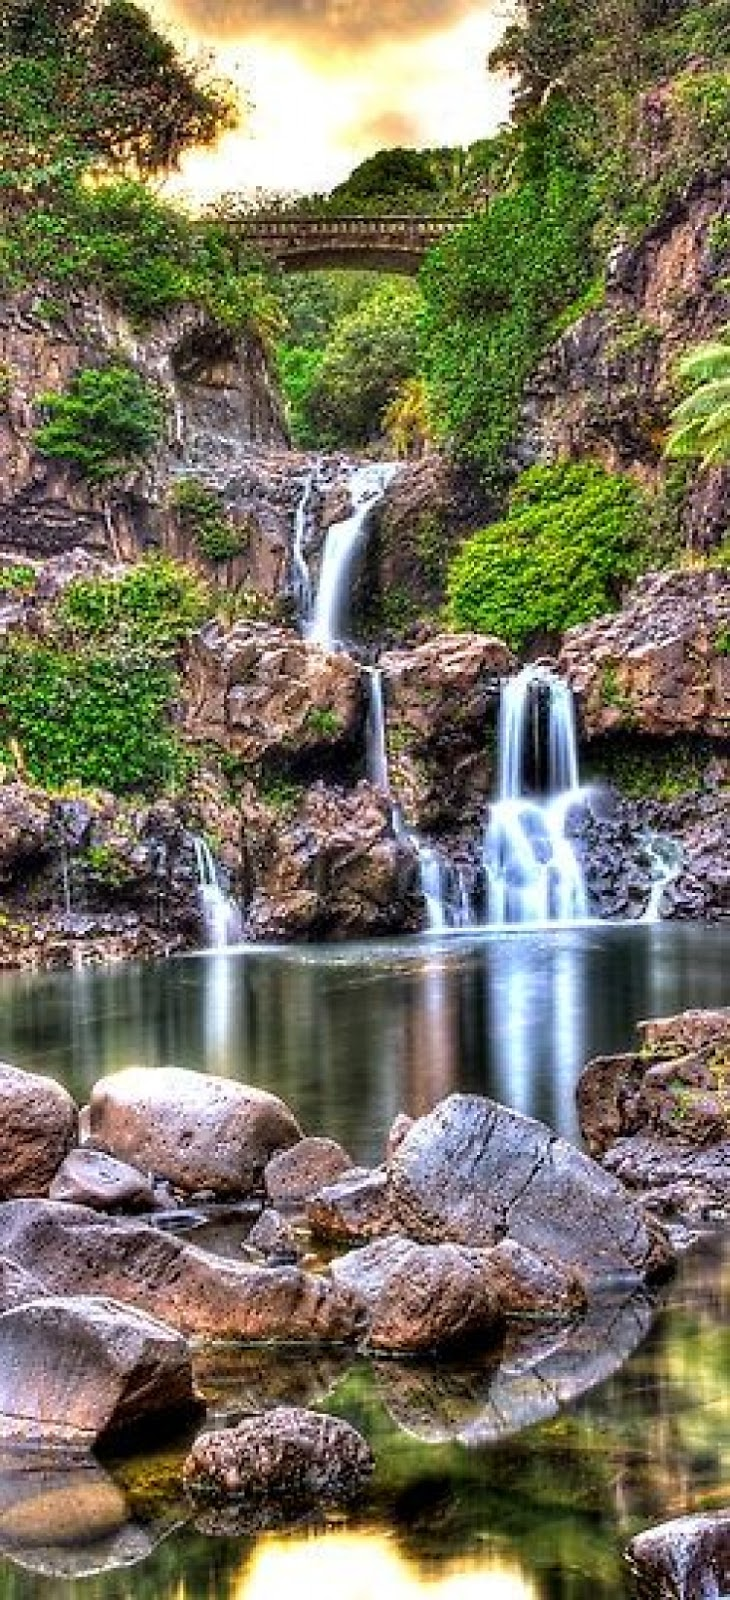 Sizzling Tourist Hotspots in Hawaii | The pools at Oheo, Haleakala National Park, Maui, Hawaii